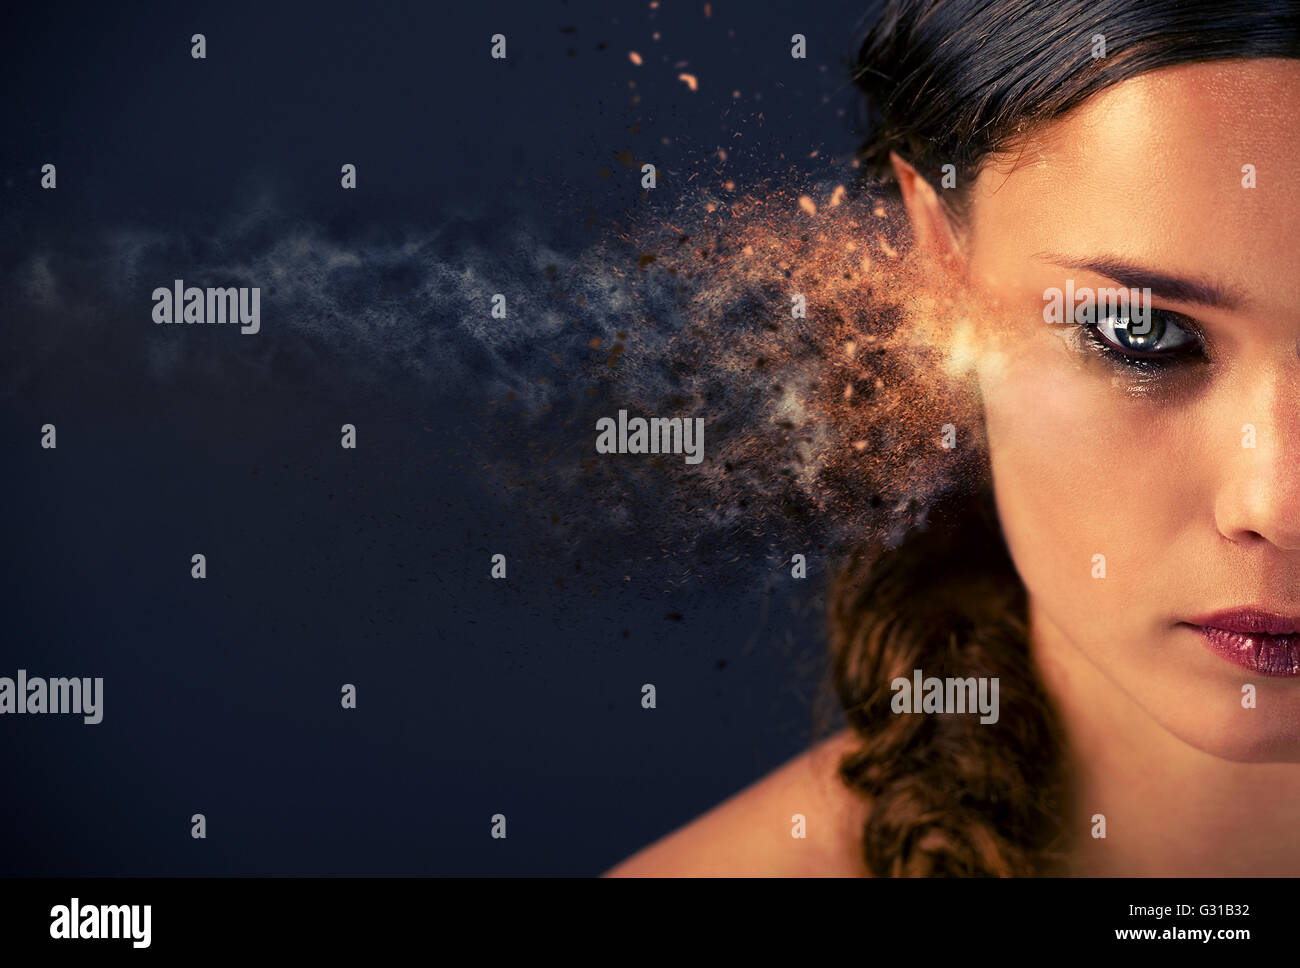 Half face of a young woman in tears. Digitally generated image - Stock Image